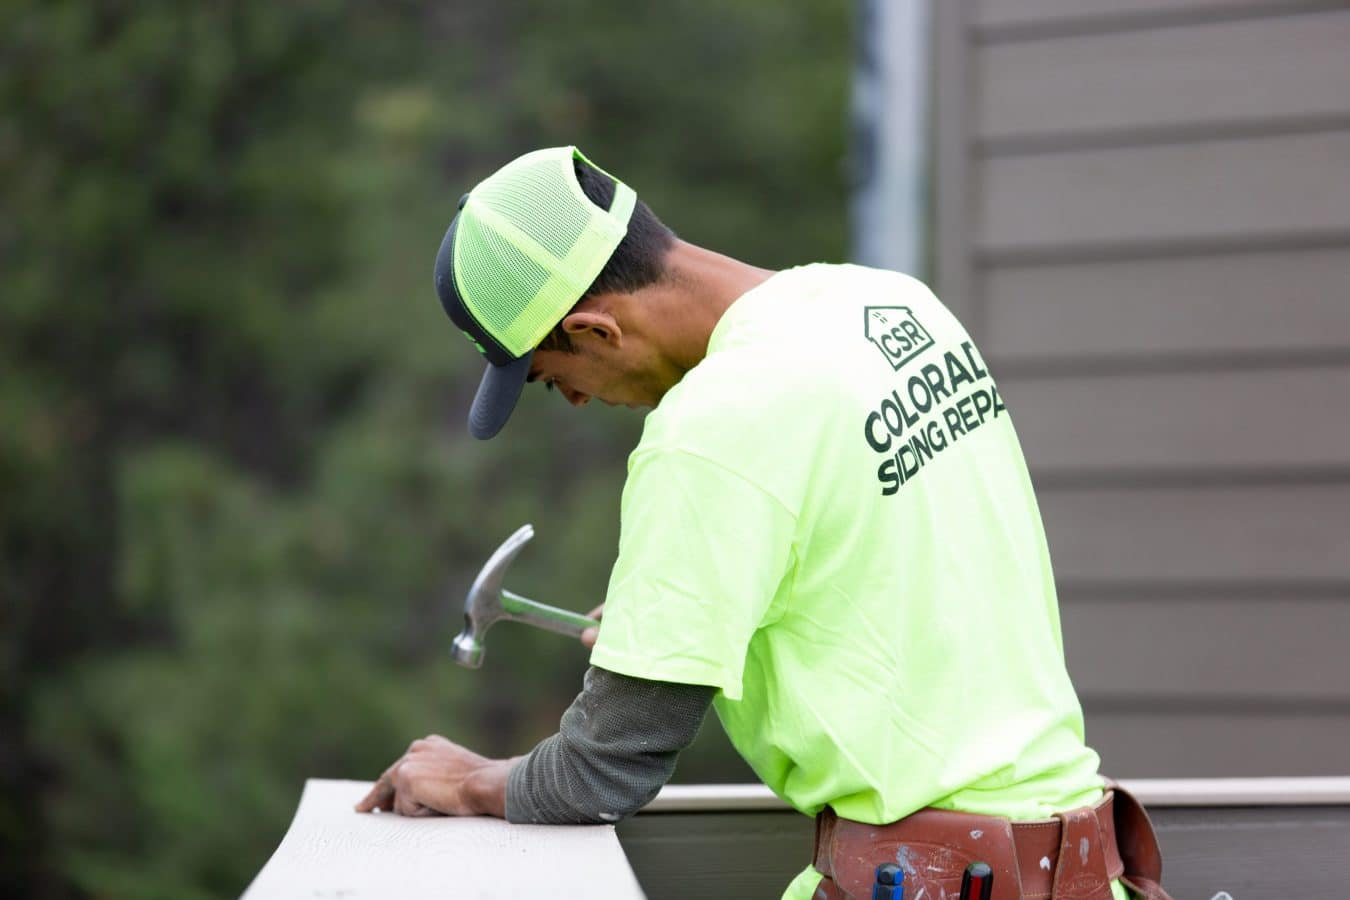 Colorado Siding Repair employee working on a project